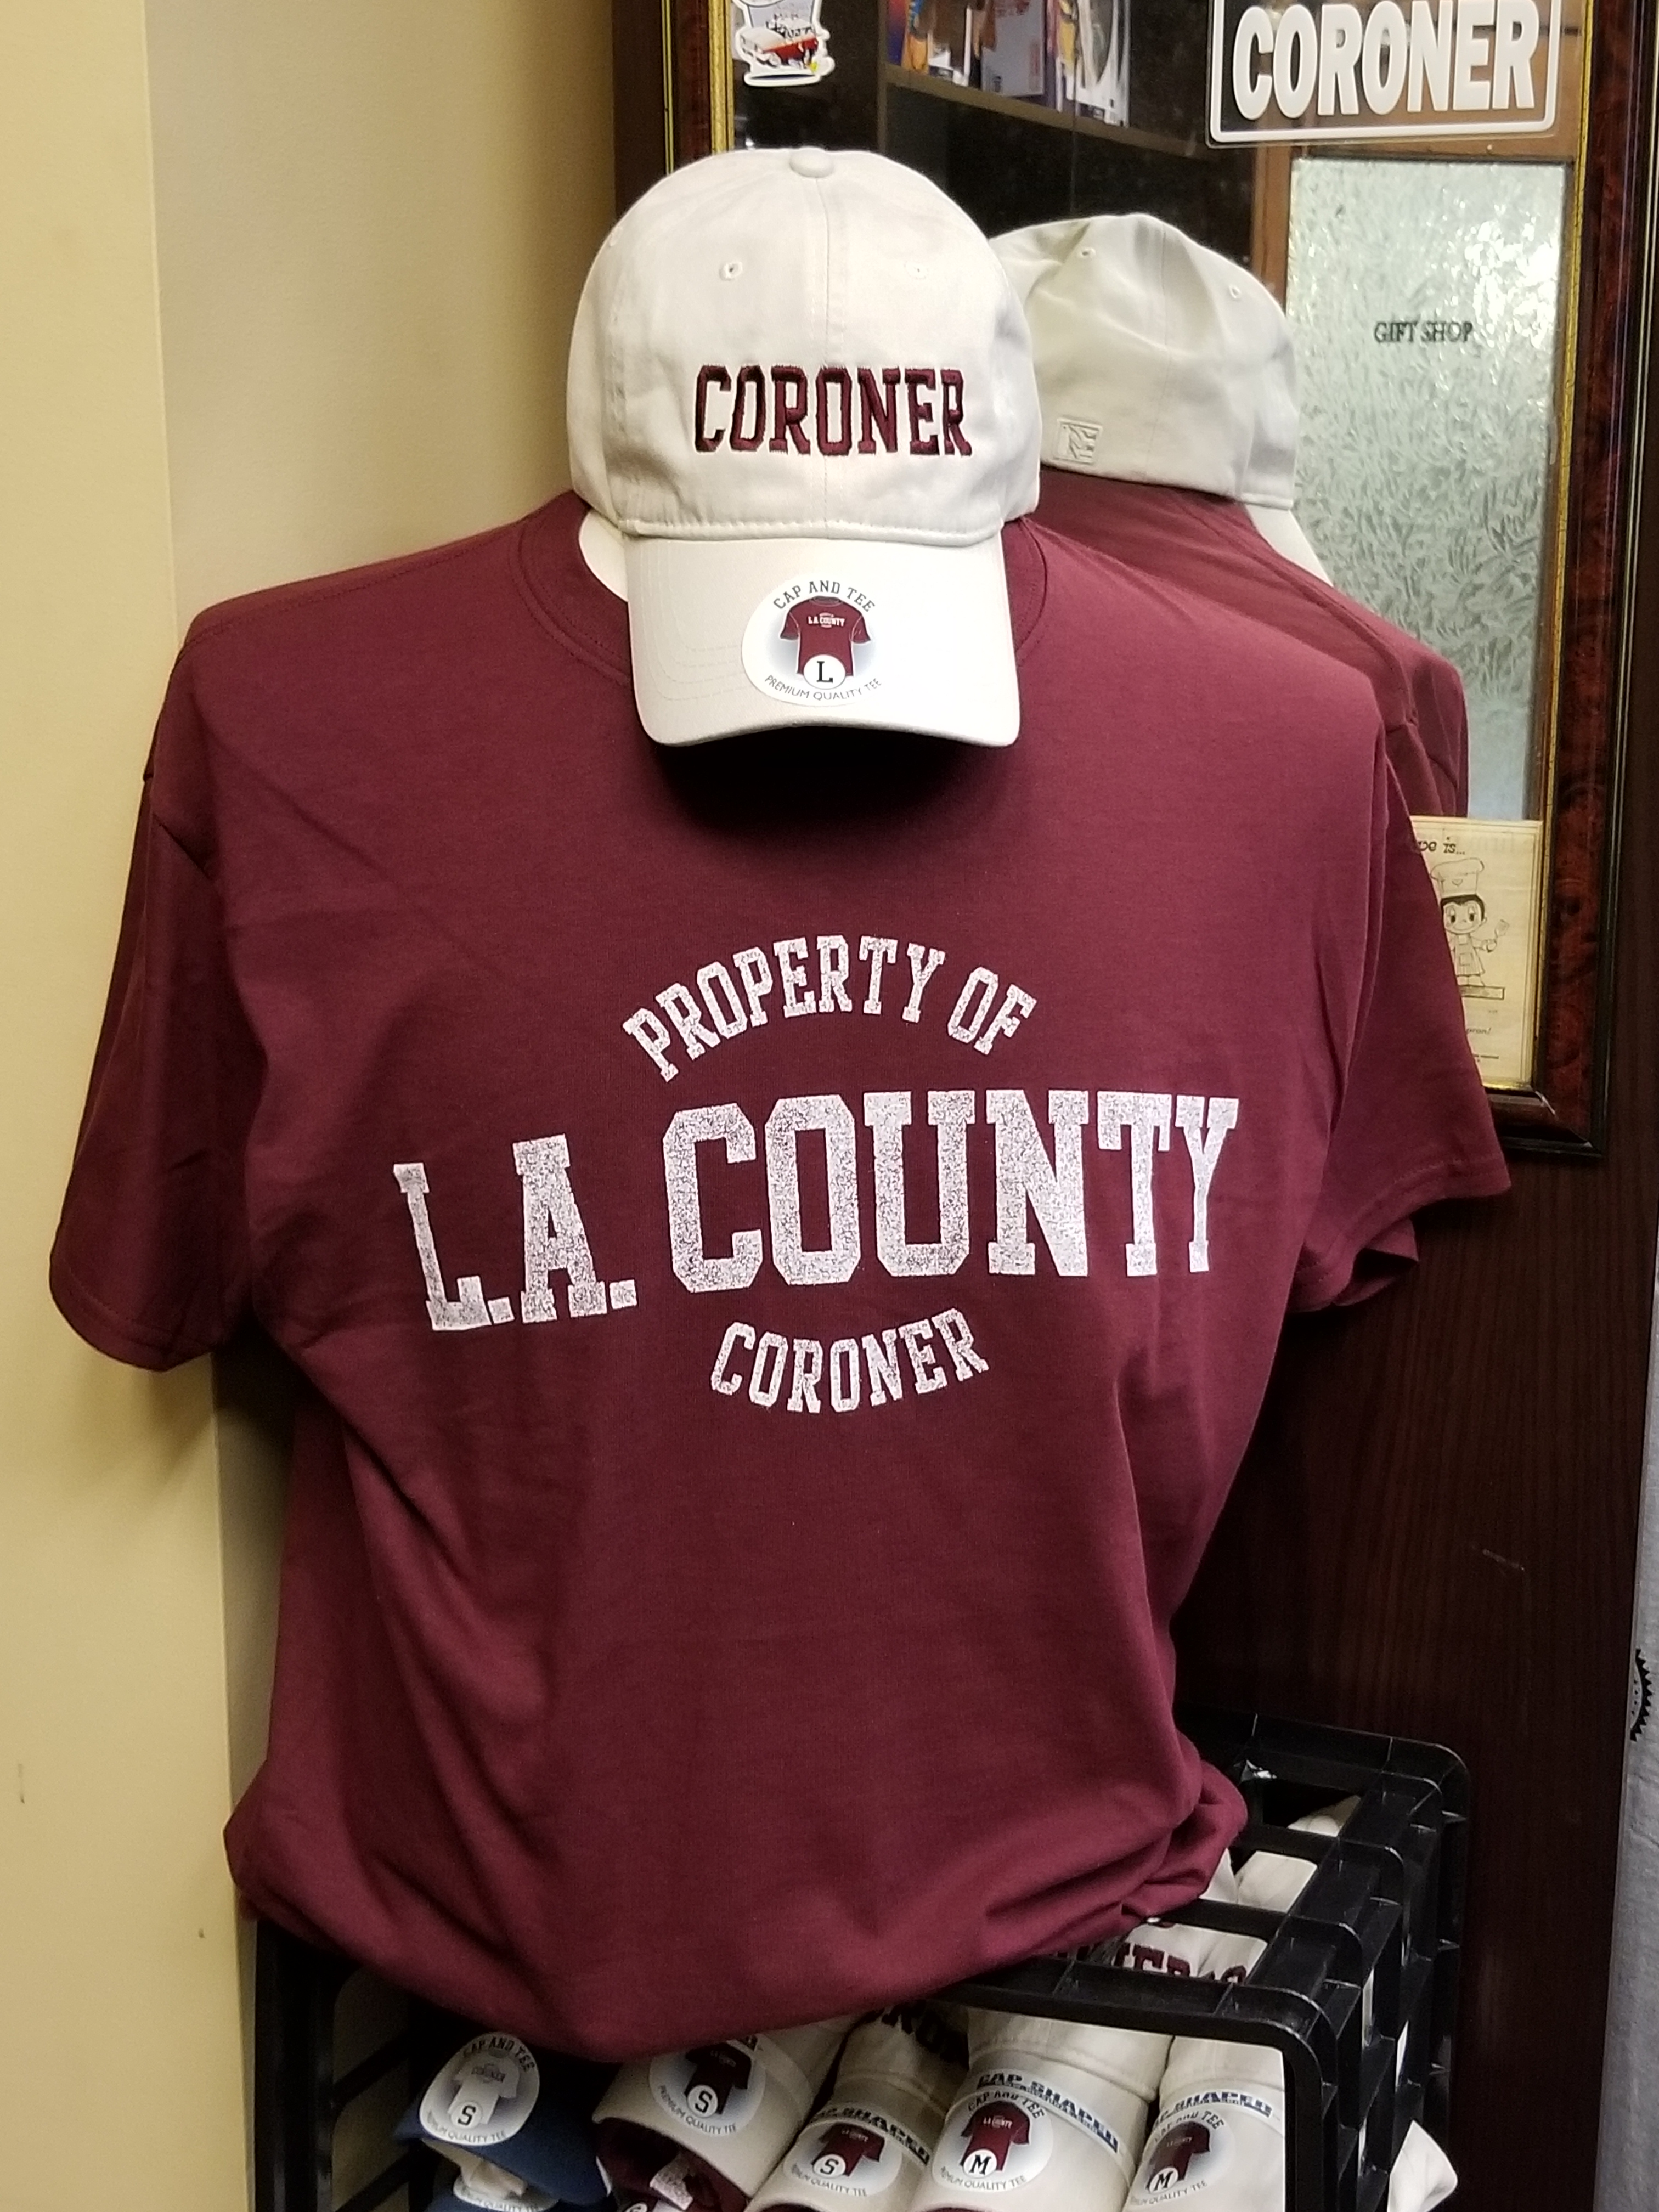 L.A. County Coroner Cap and Tee Combo